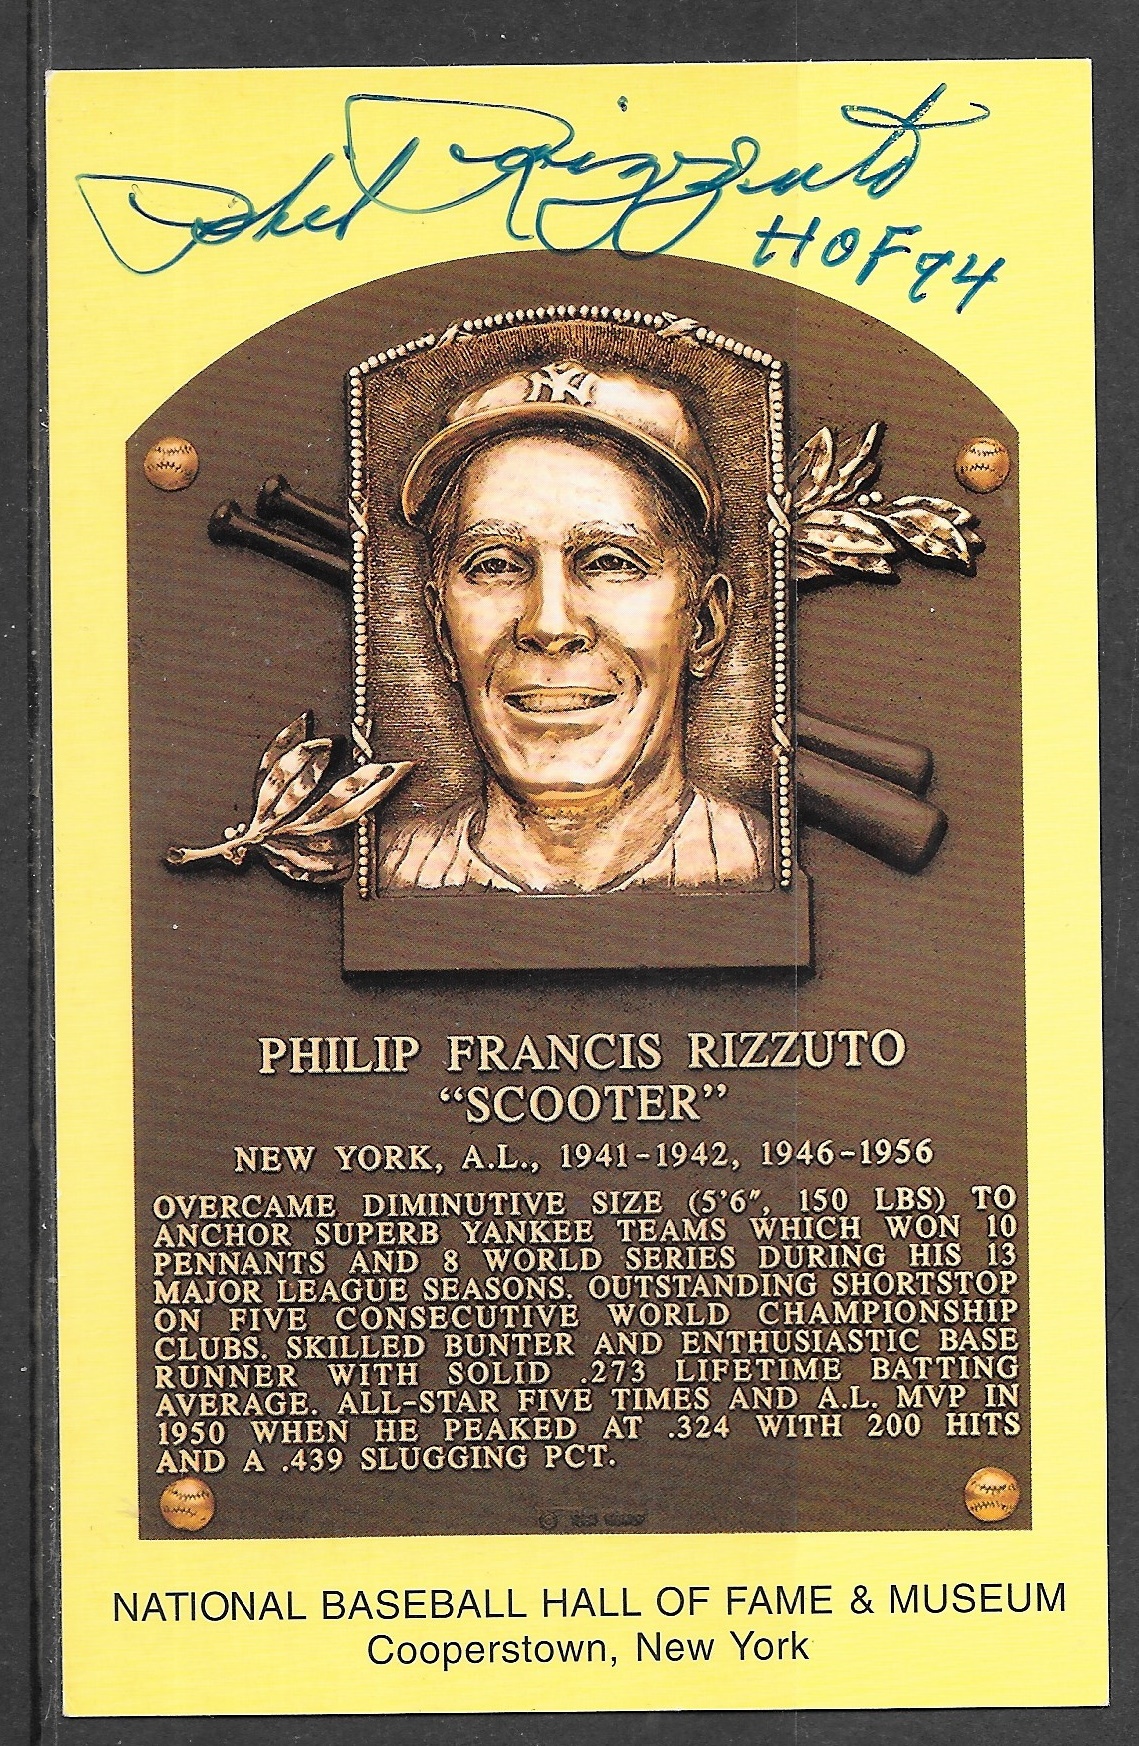 Phil Rizzuto plaque